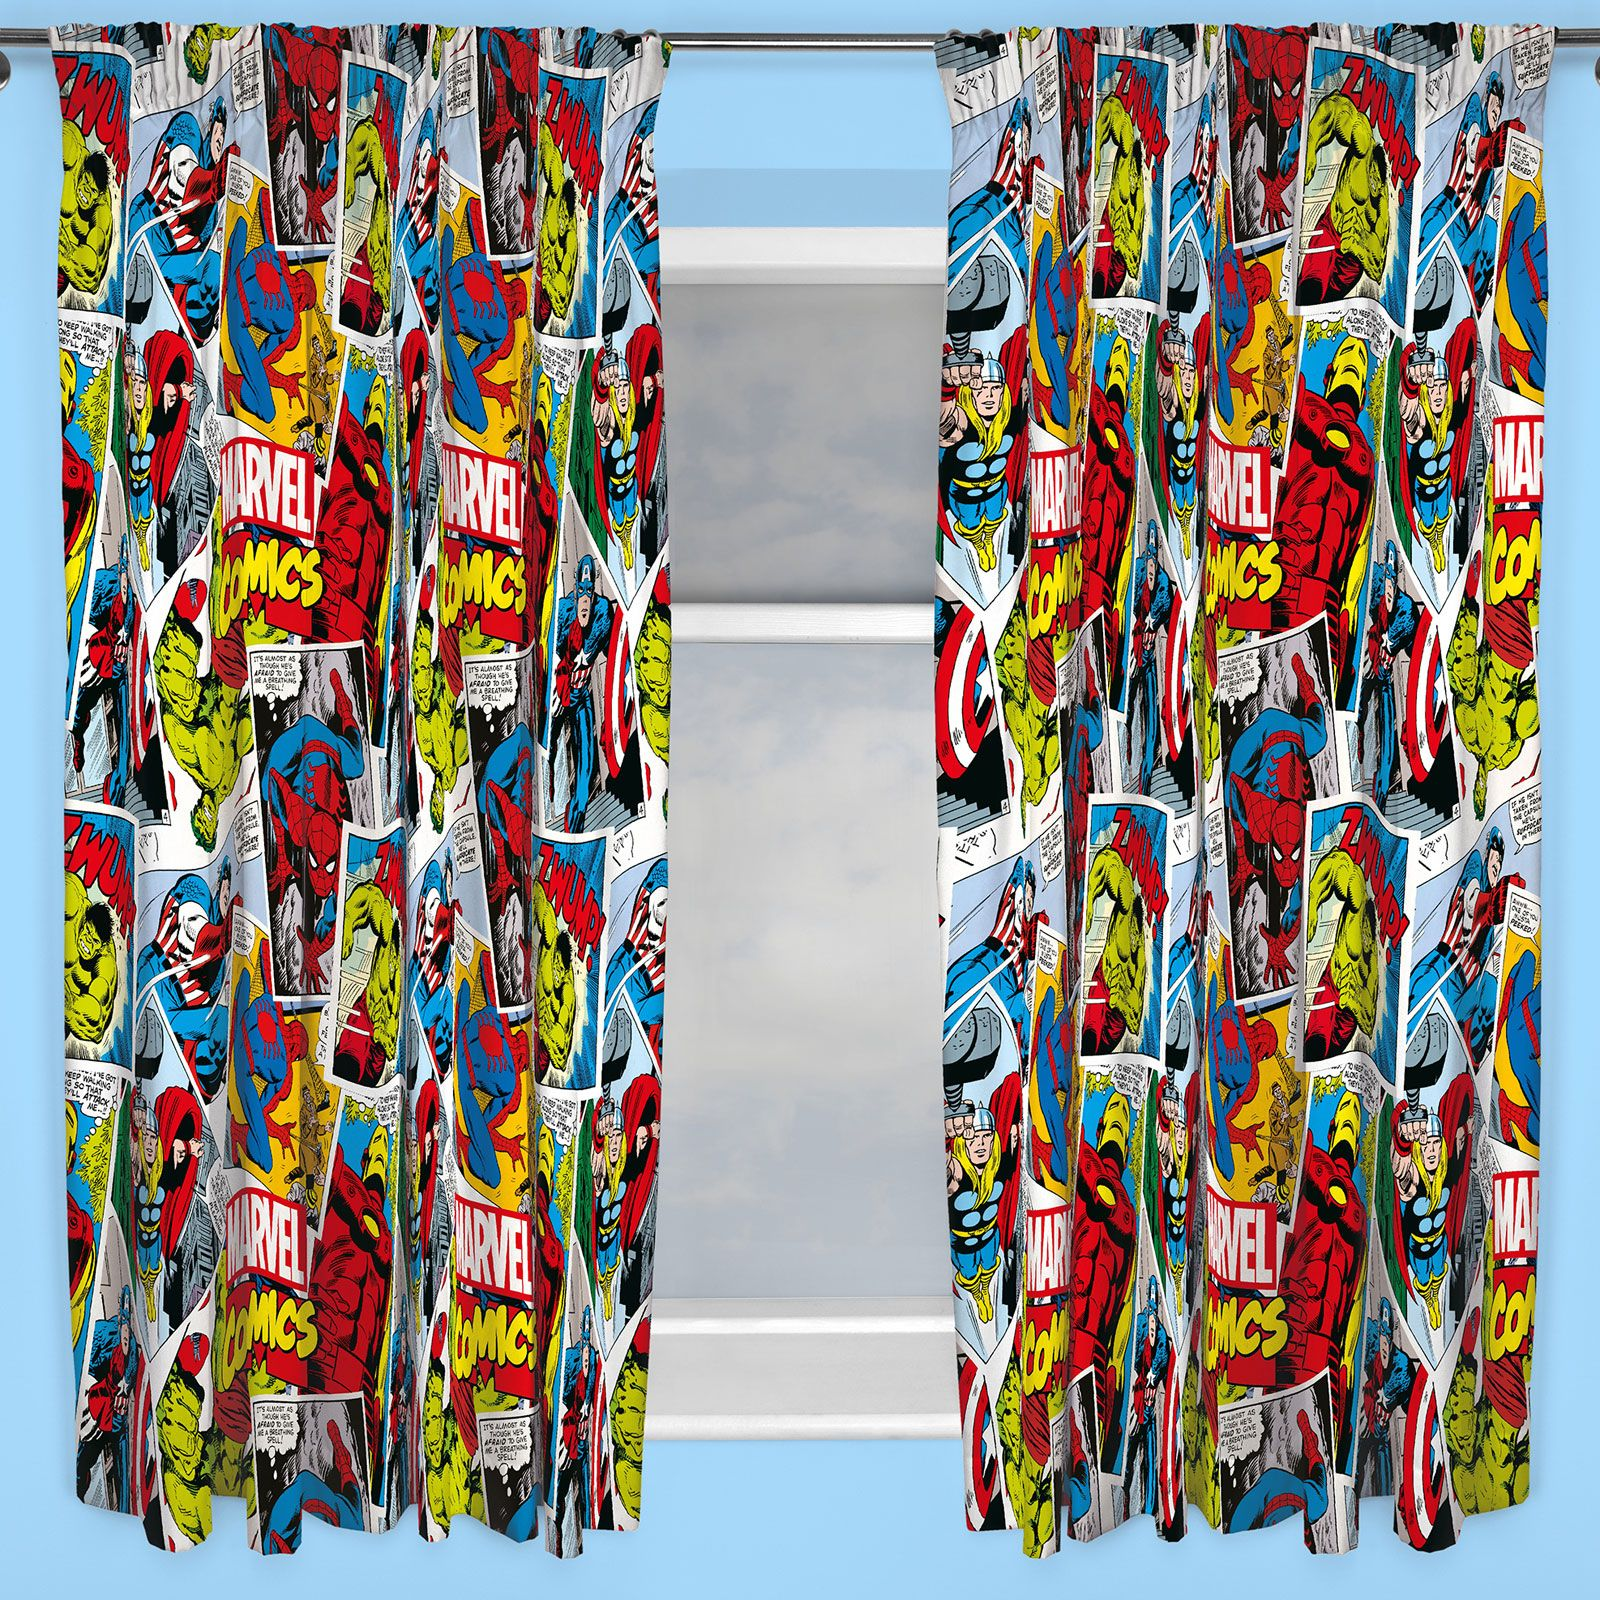 Captivating MARVEL COMICS JUSTICE DUVET COVER SETS Amp MATCHING